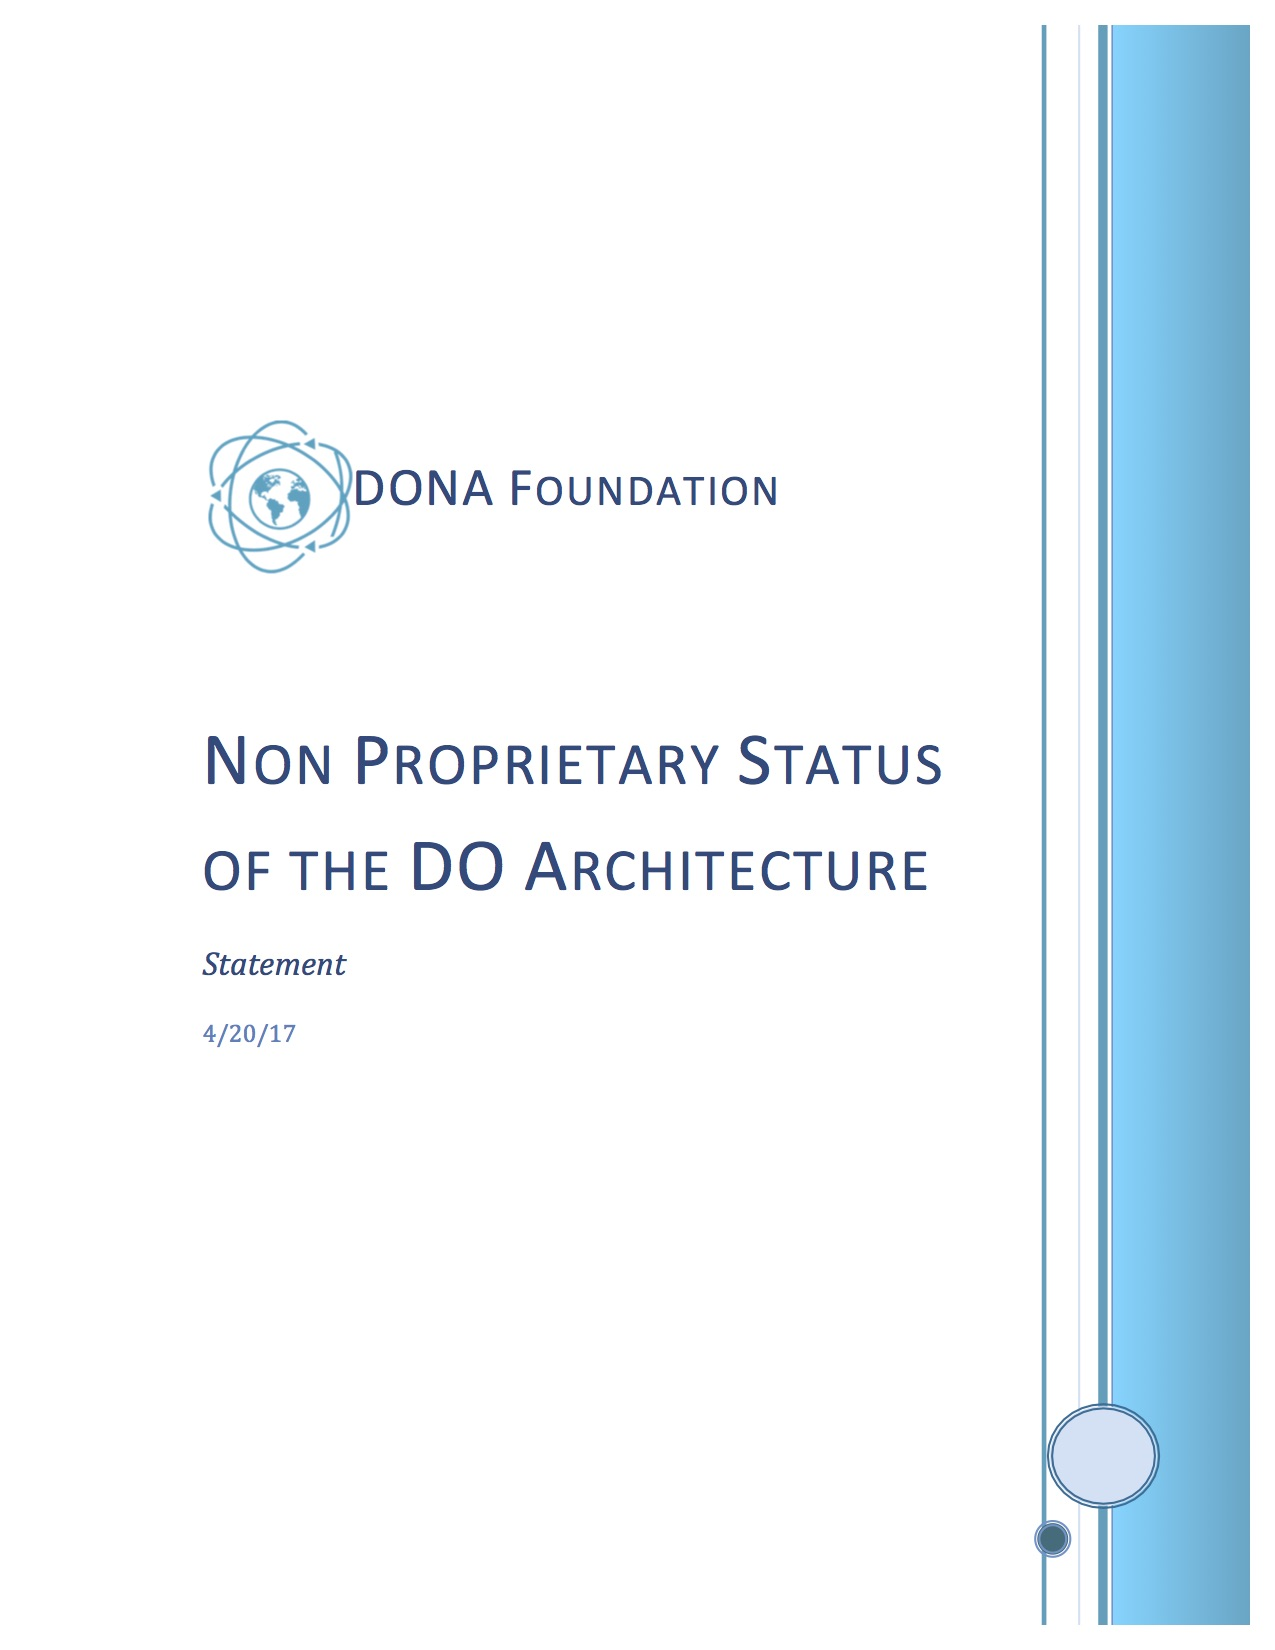 Non Proprietary Status of the DO Architecture